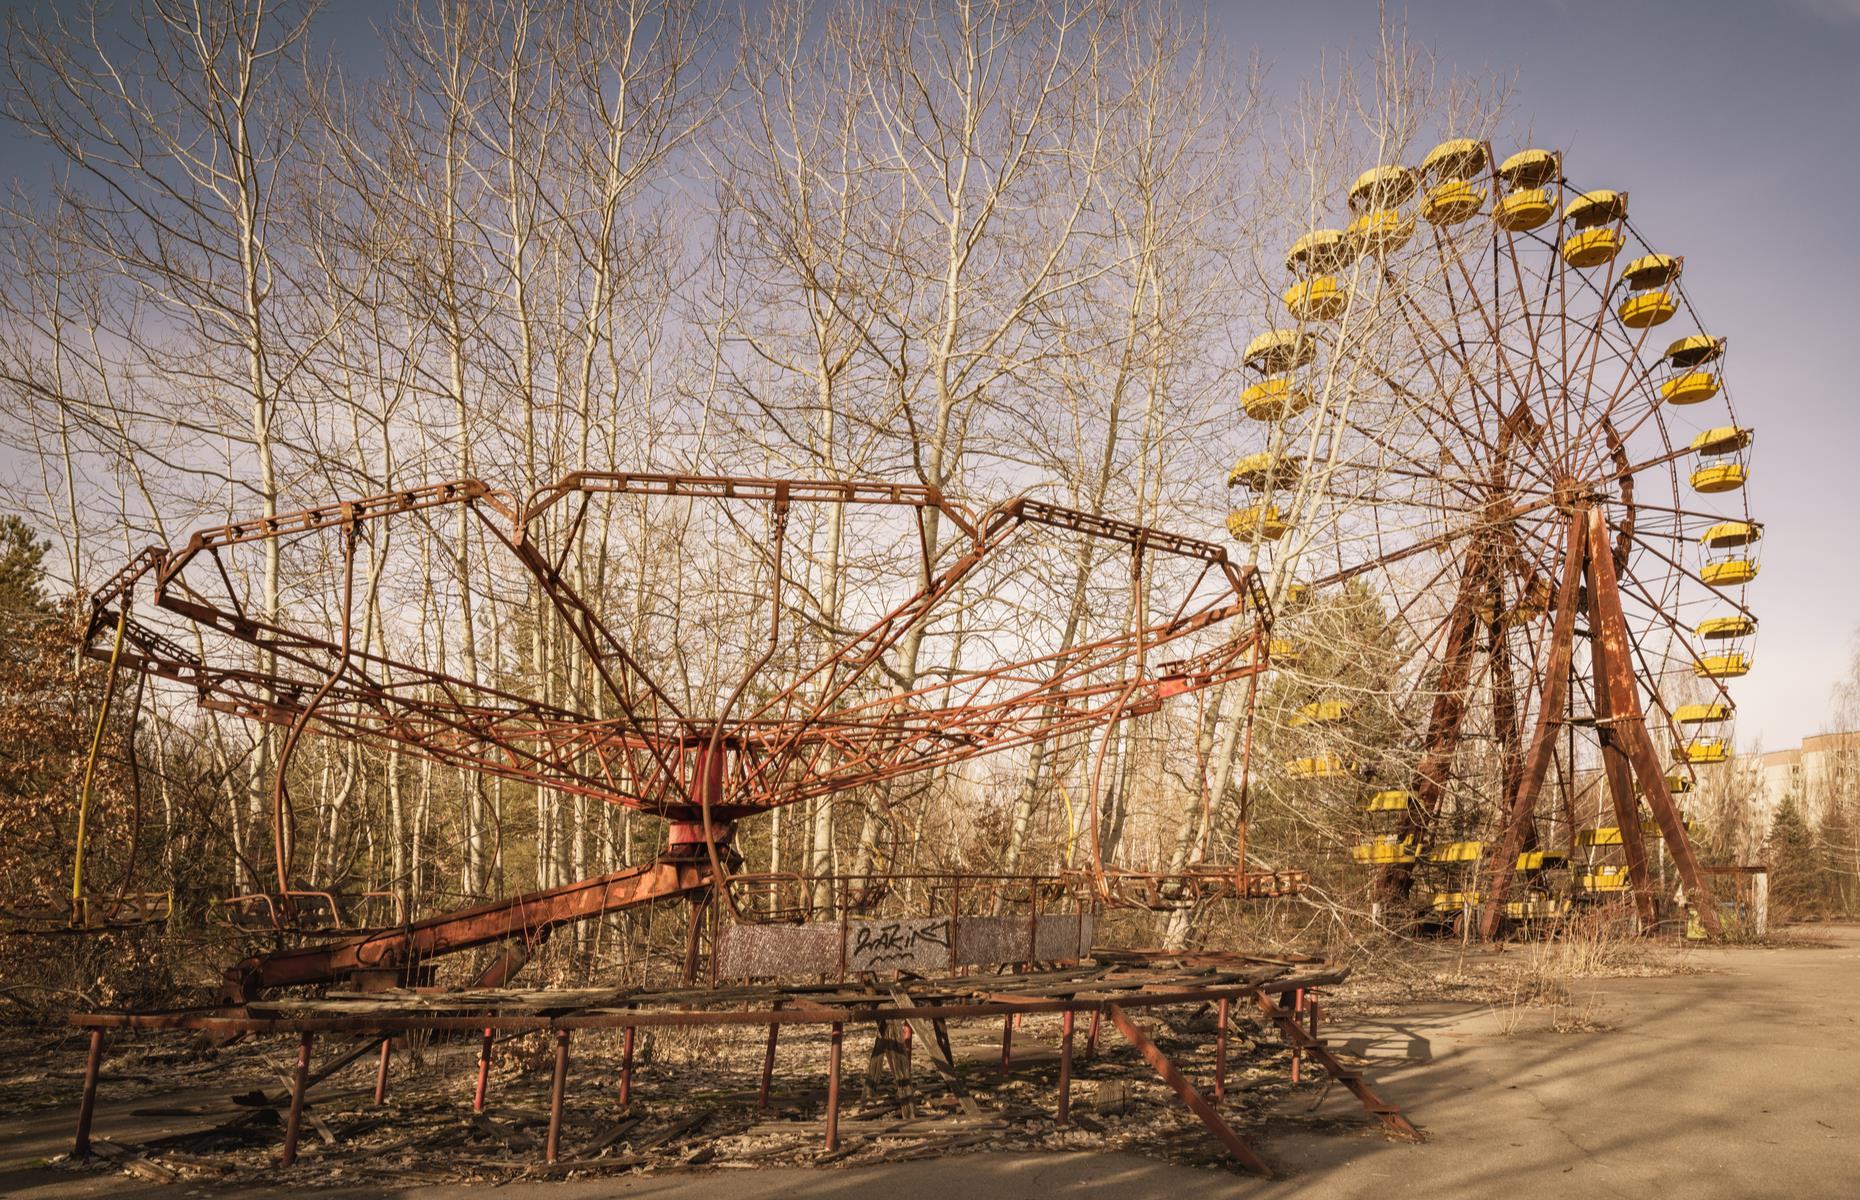 Slide 49 of 51: Today, its Ferris wheel, carousels and bumper cars are covered in rust and stand abandoned in the ghost town. Take a look inside America's abandoned theme parks here.